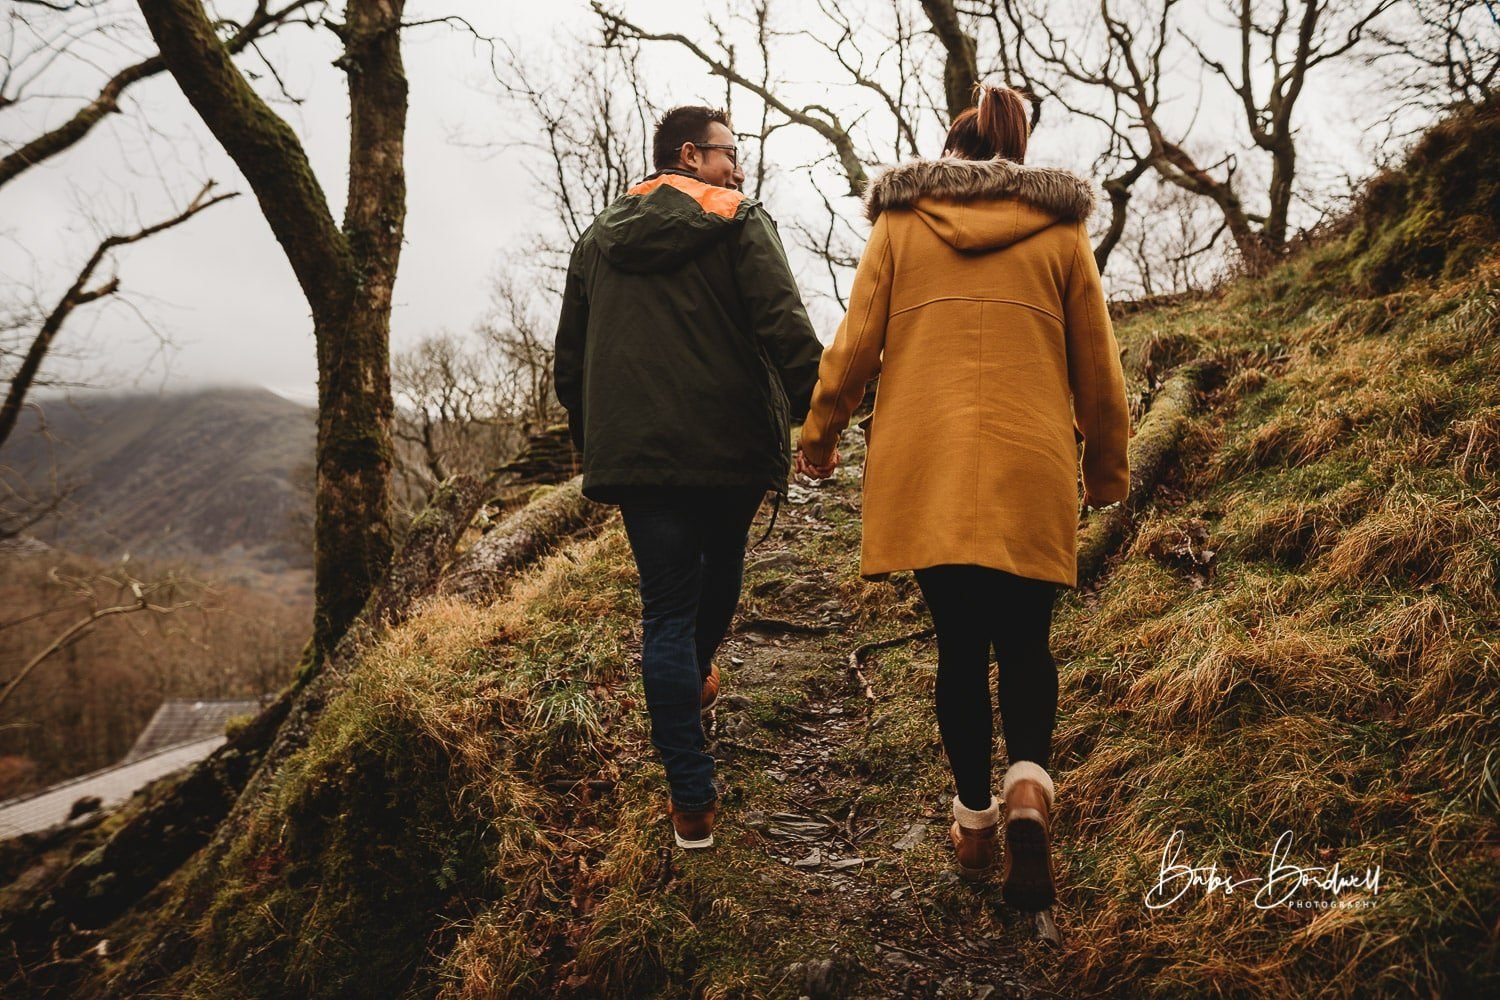 Engaged couple holding hands walking up a path into a forest